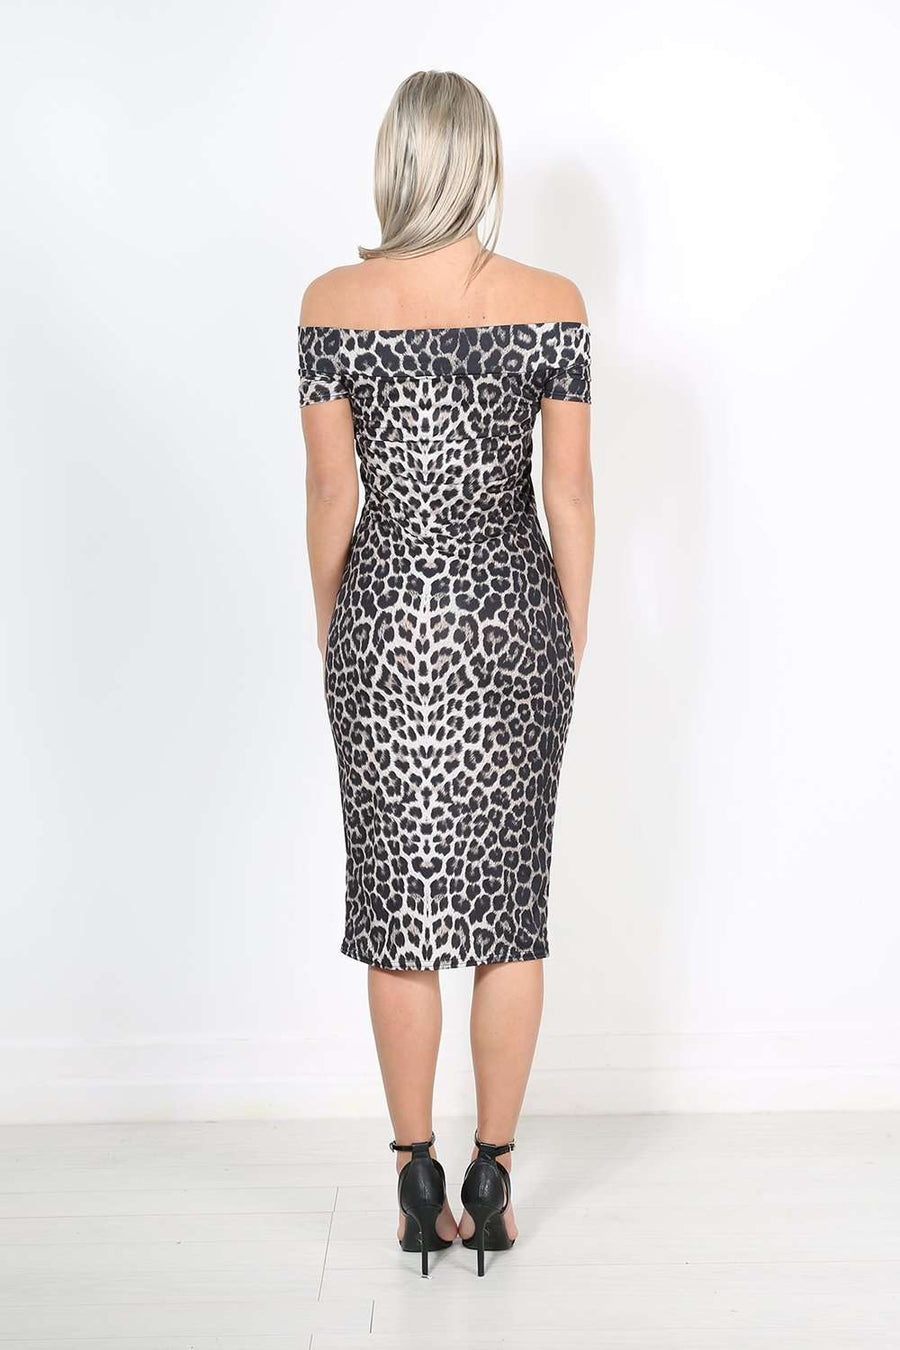 Kassie Bardot Leopard Print Midi Bodycon Dress - bejealous-com